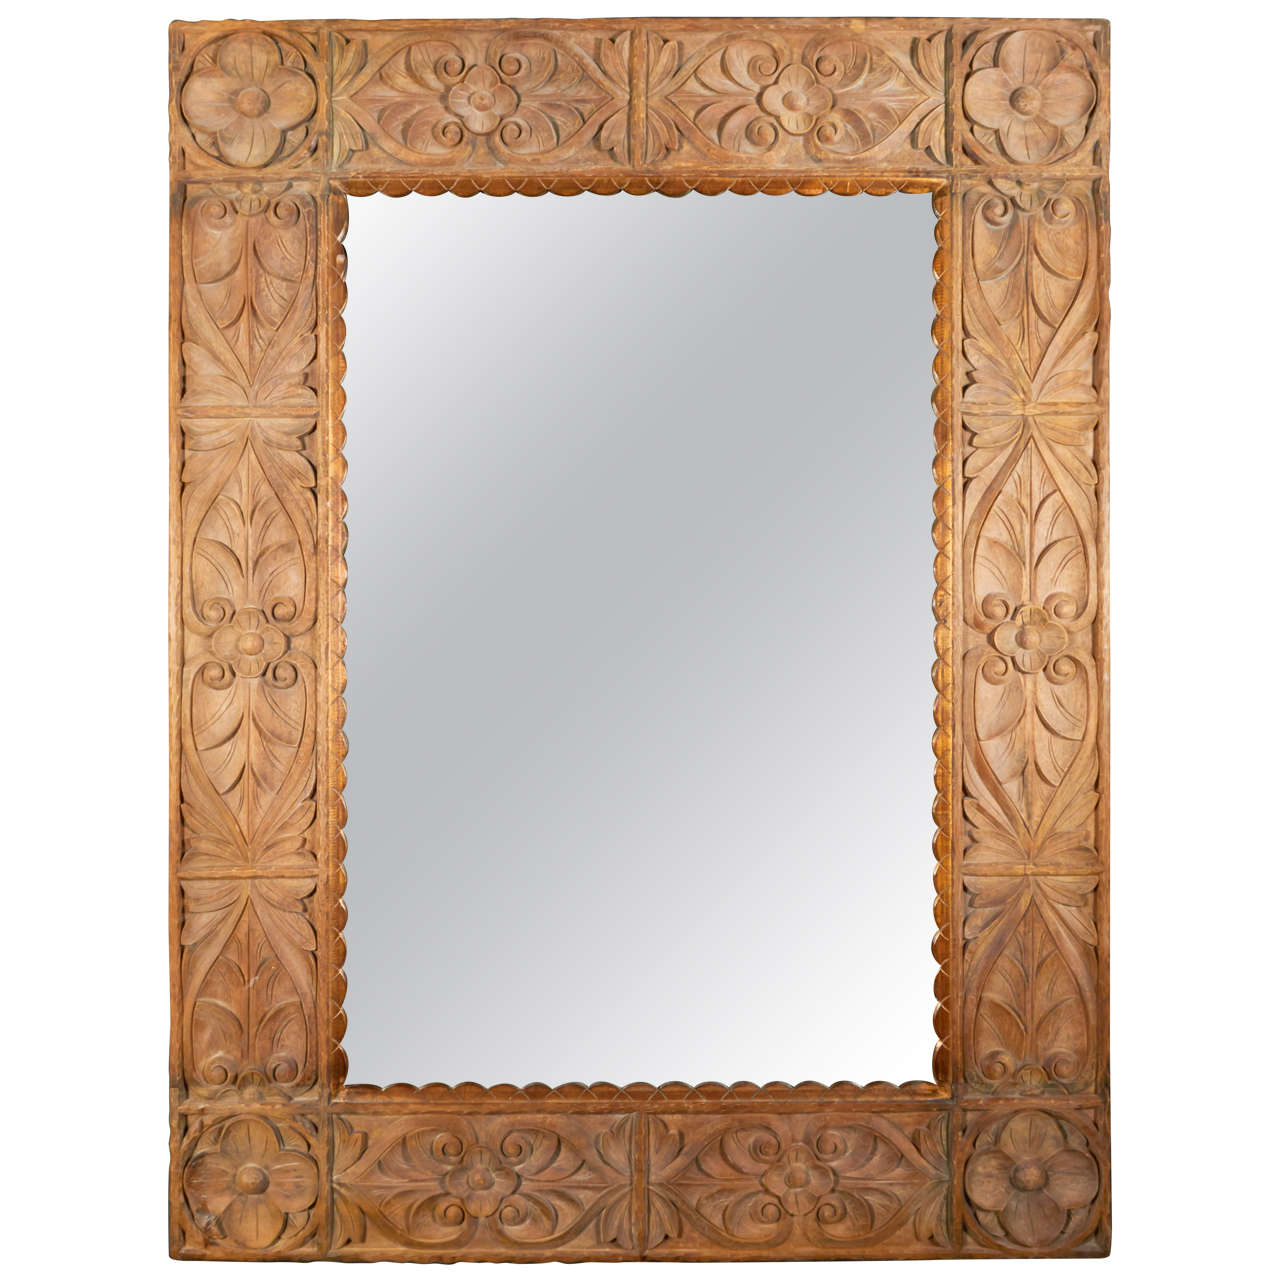 Monumental Vintage Indonesian Lotus Mirror in Hand Carved Teak Wood 1